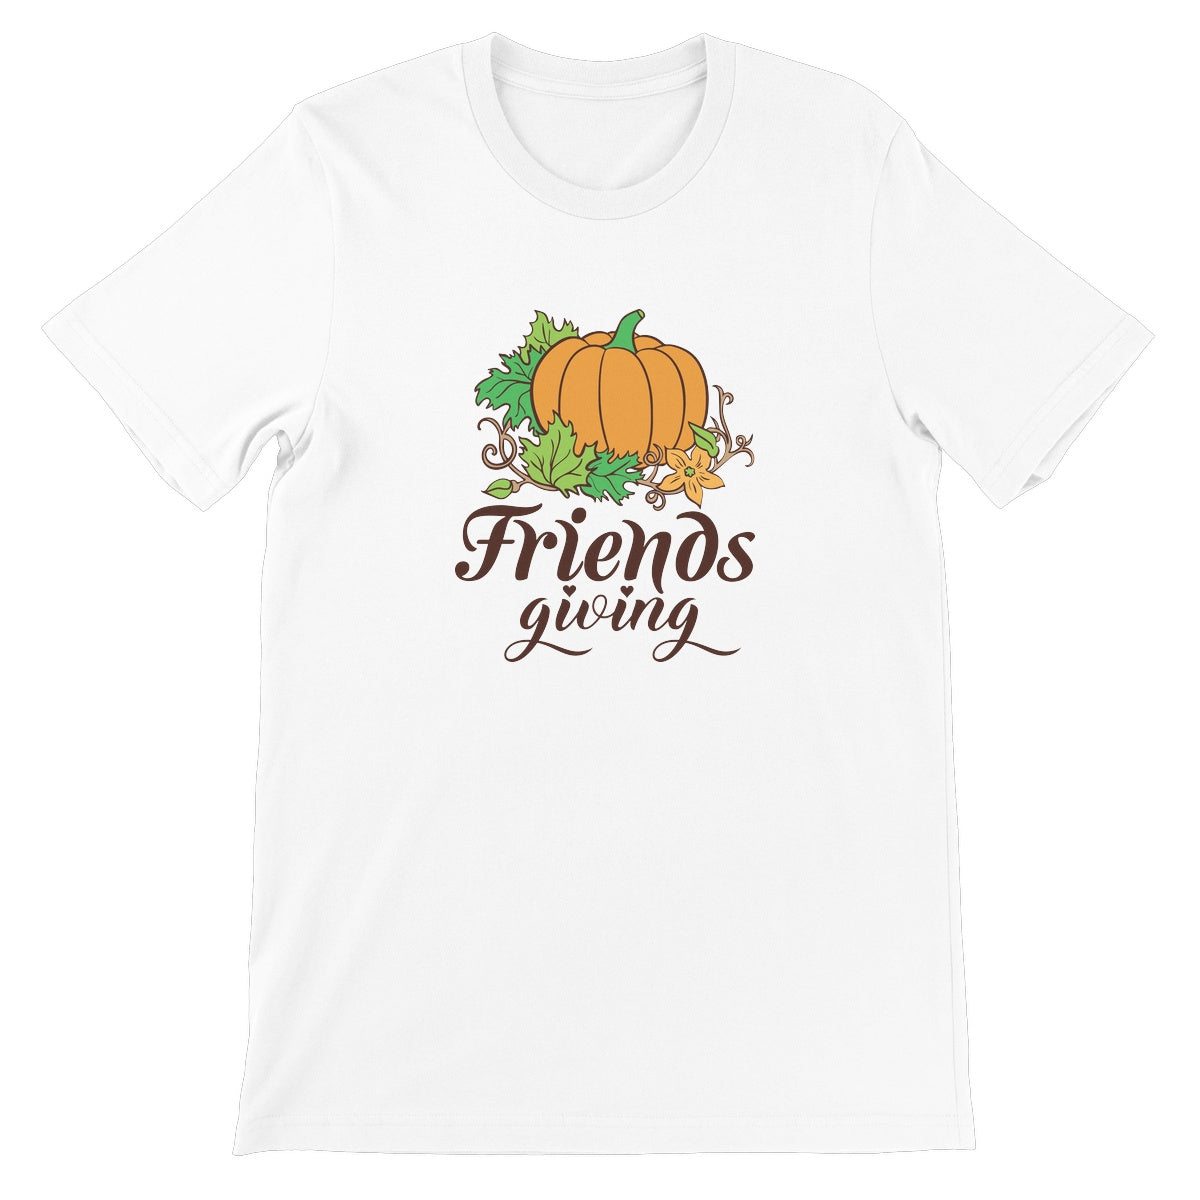 Friendsgiving Unisex Short Sleeve T-Shirt